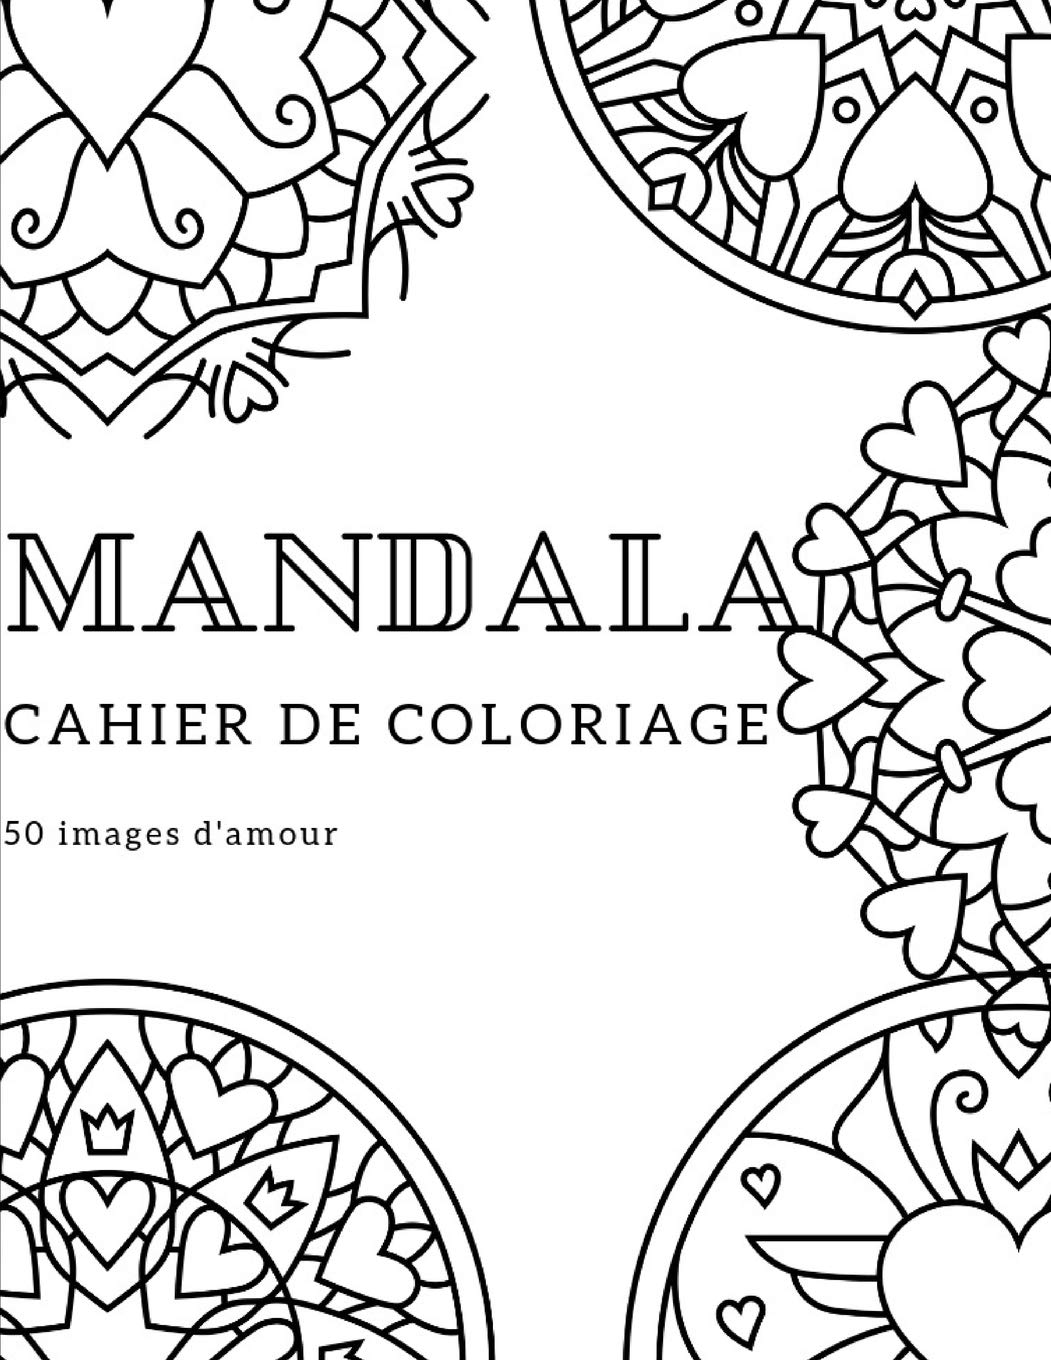 Cahier De Coloriage Mandala 50 Mandalas Differents Avec Love And Heart French Edition Book Painting 9781099895081 Amazon Com Books